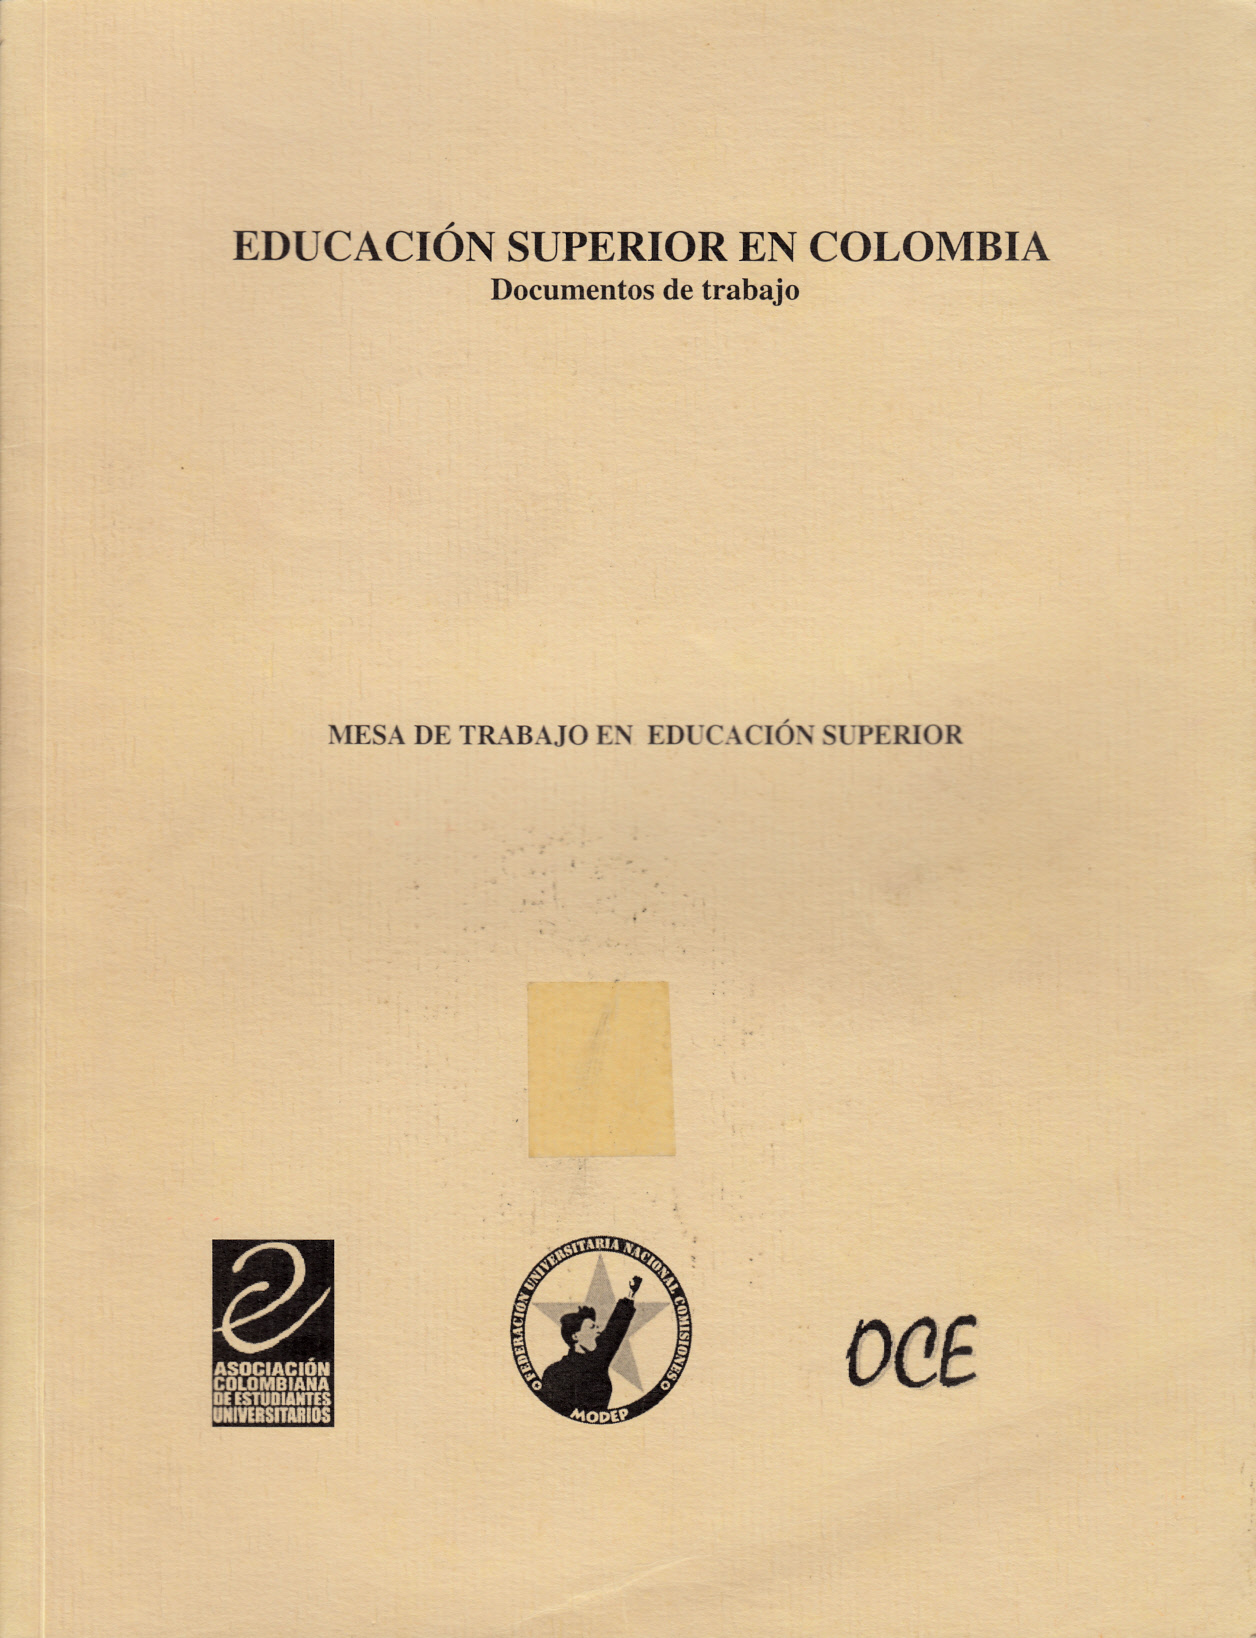 ACEU_Colombia